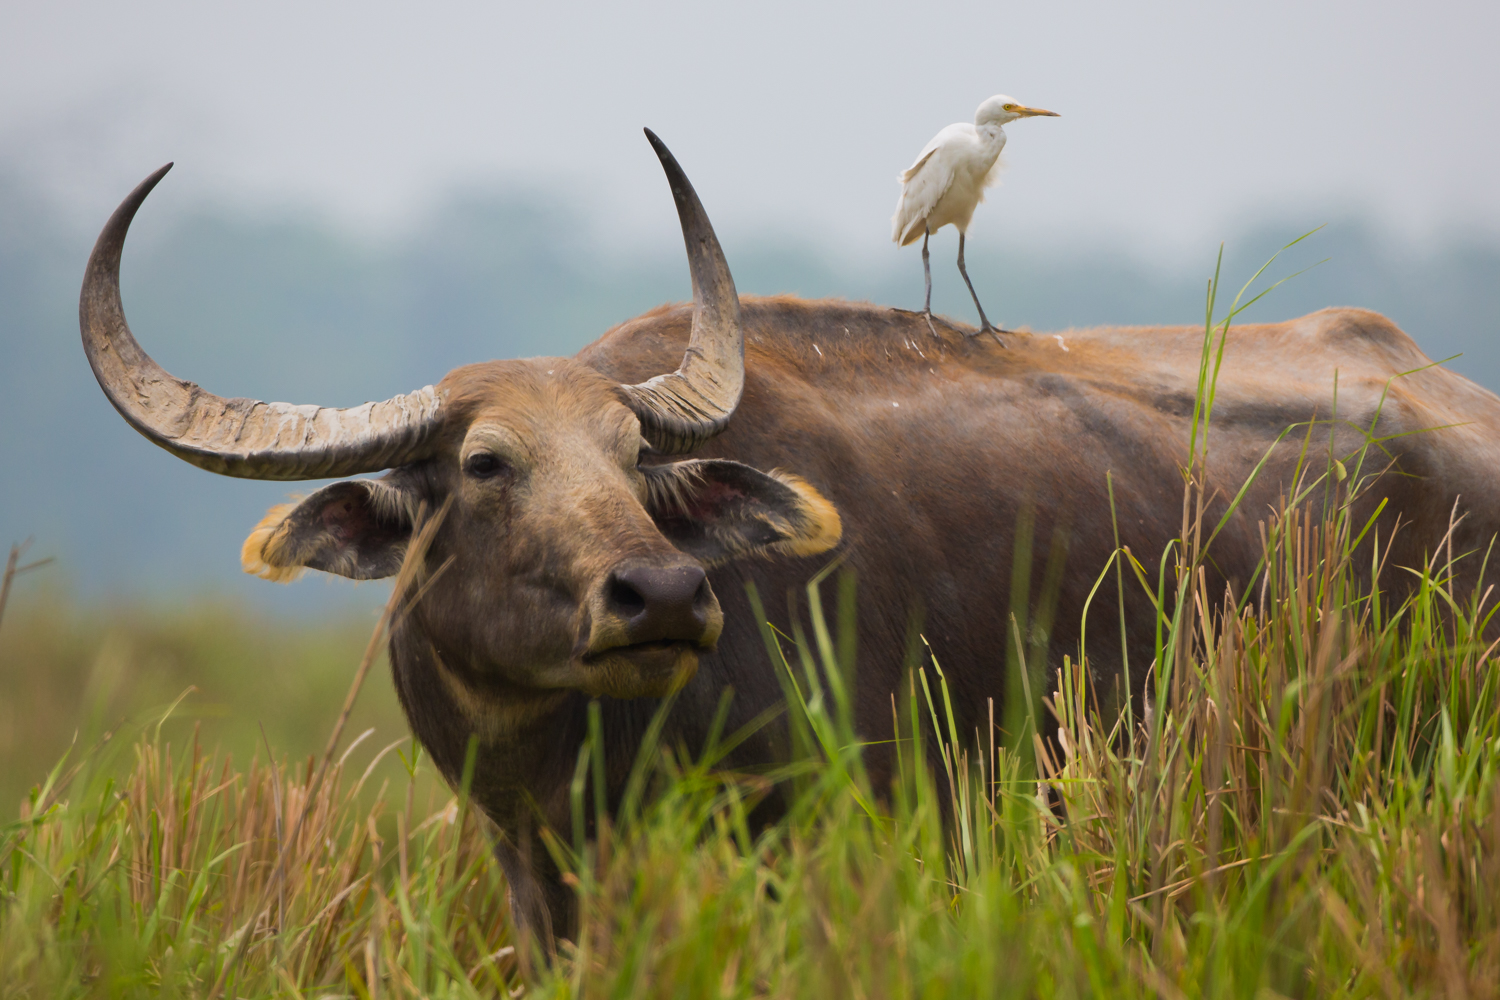 Indian wildlife photography, birds, animals and reptiles